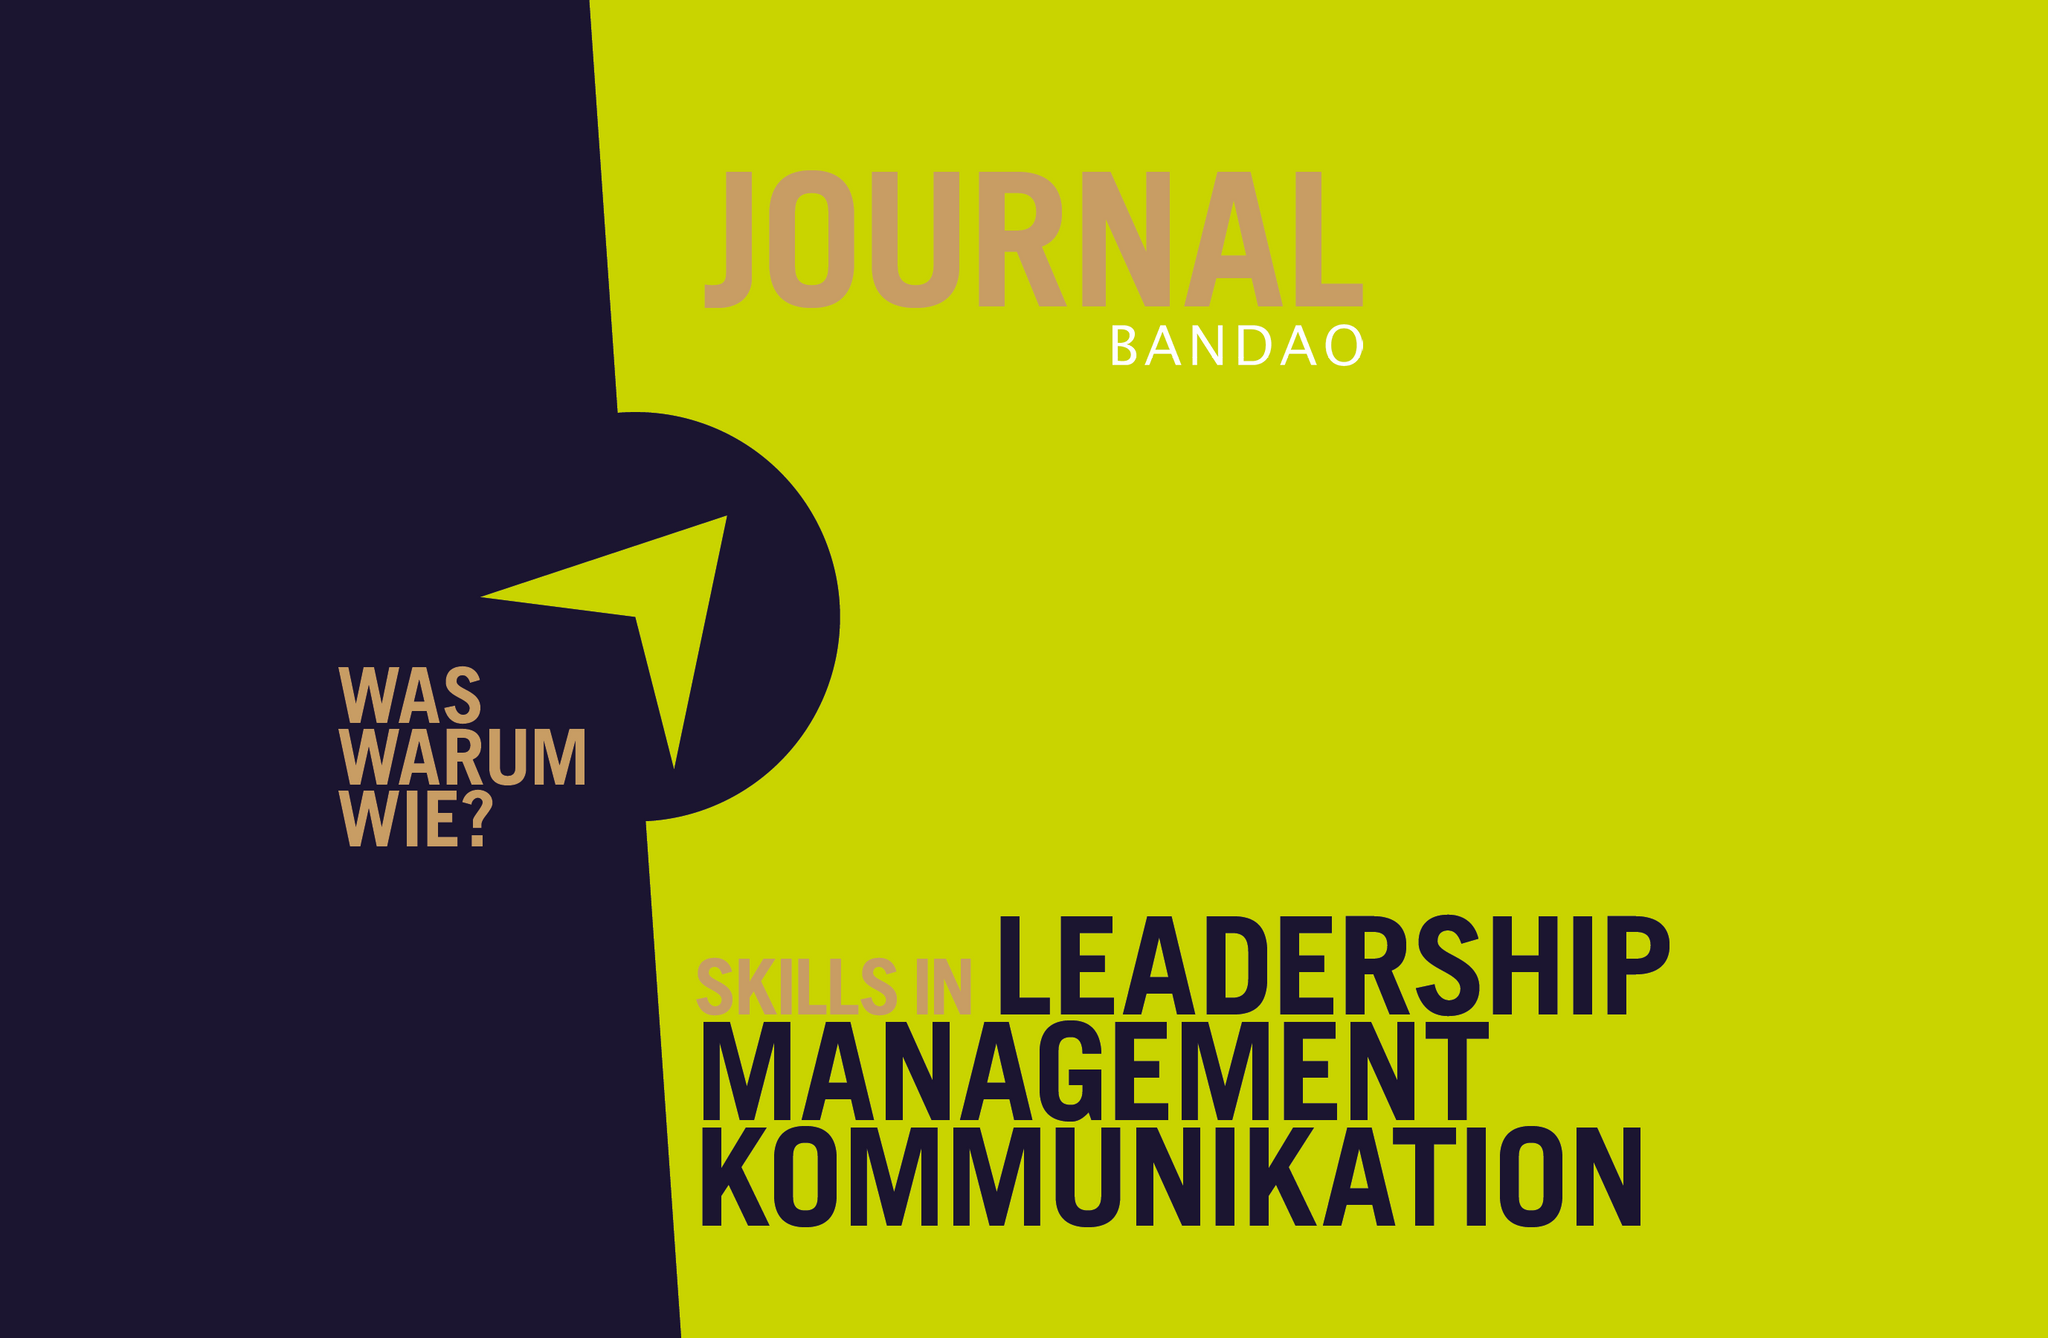 JOURNAL - Skills in LEADERSHIP. MANAGEMENT. KOMMUNIKATION.